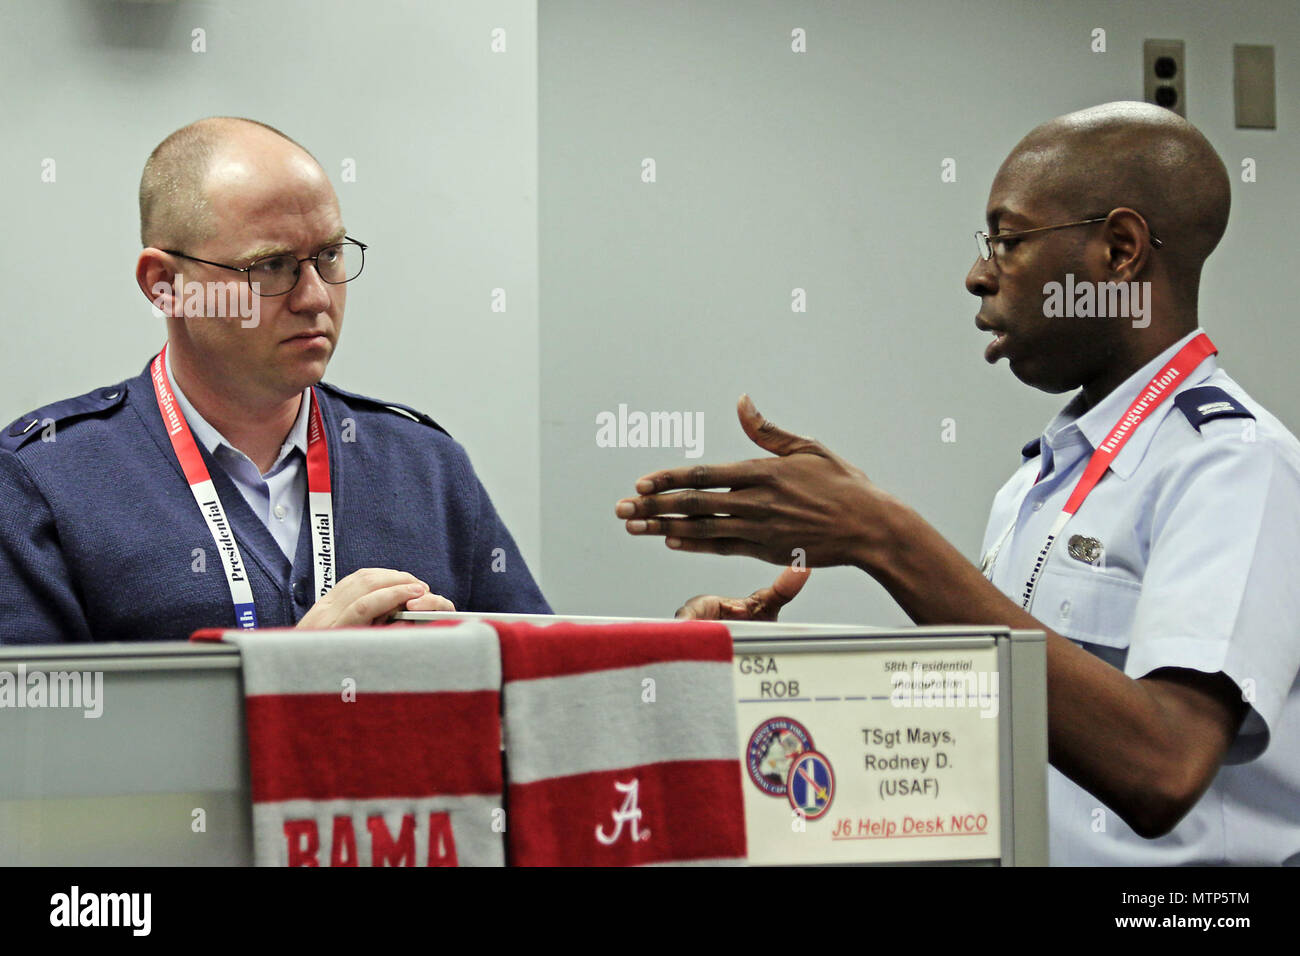 U.S. Air Force Captain Nathan Johnson, A Logistician, And Tech Sgt. Rodney  Mays, A Help Desk Technician, Both Assigned To Joint Task Force   National  ...